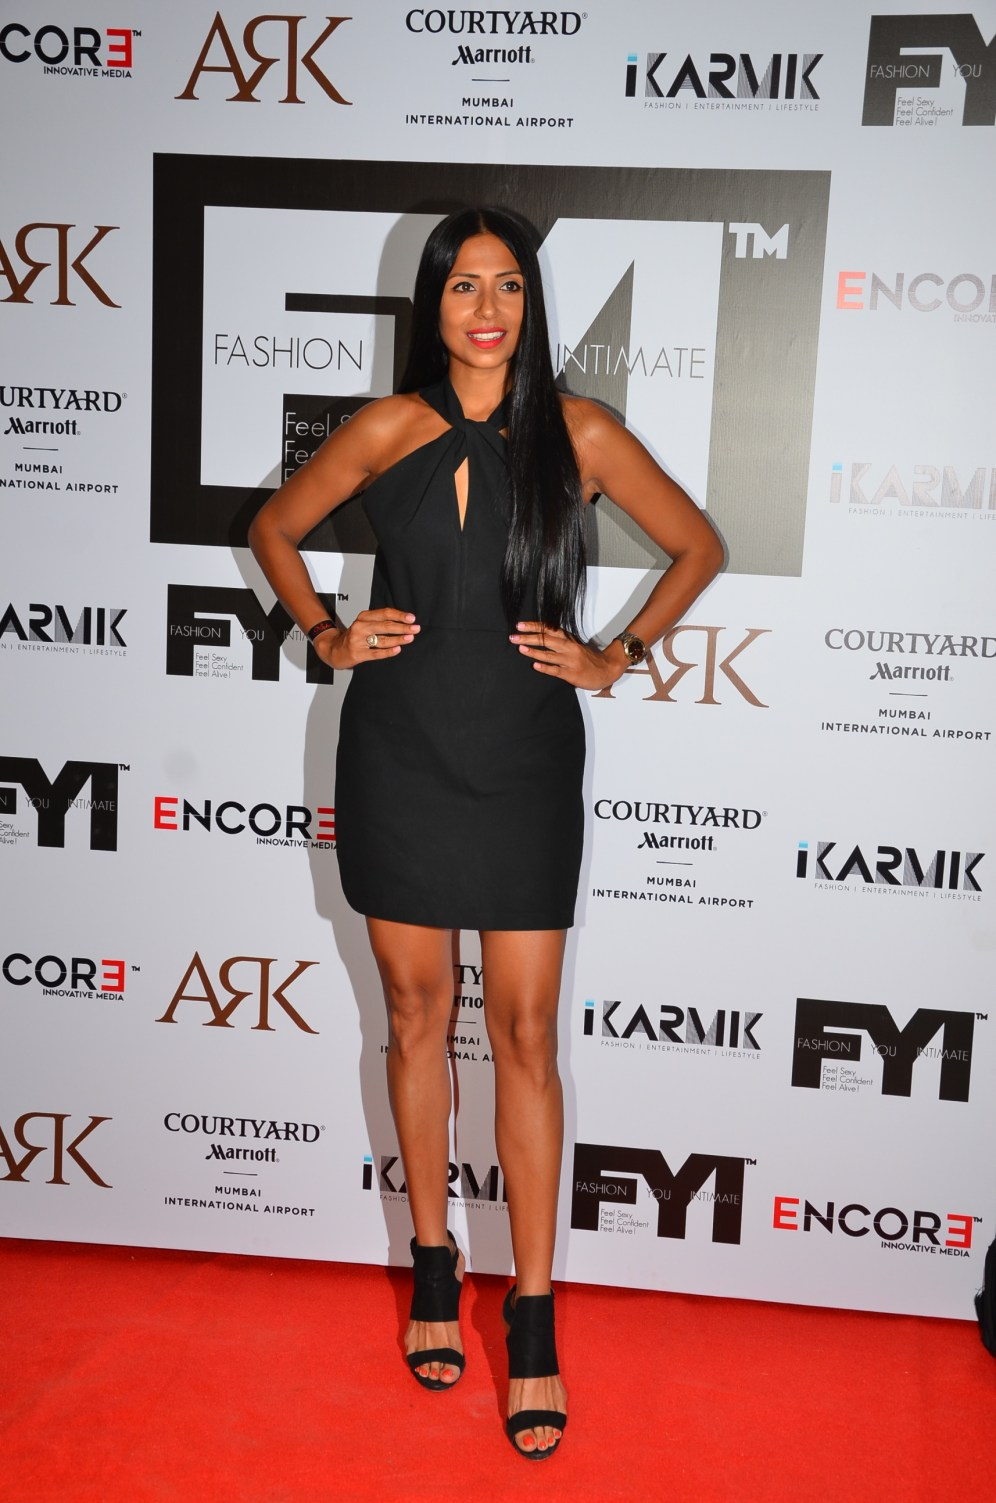 5-Candice Pinto@ FYI cover launch with Nisha Harale